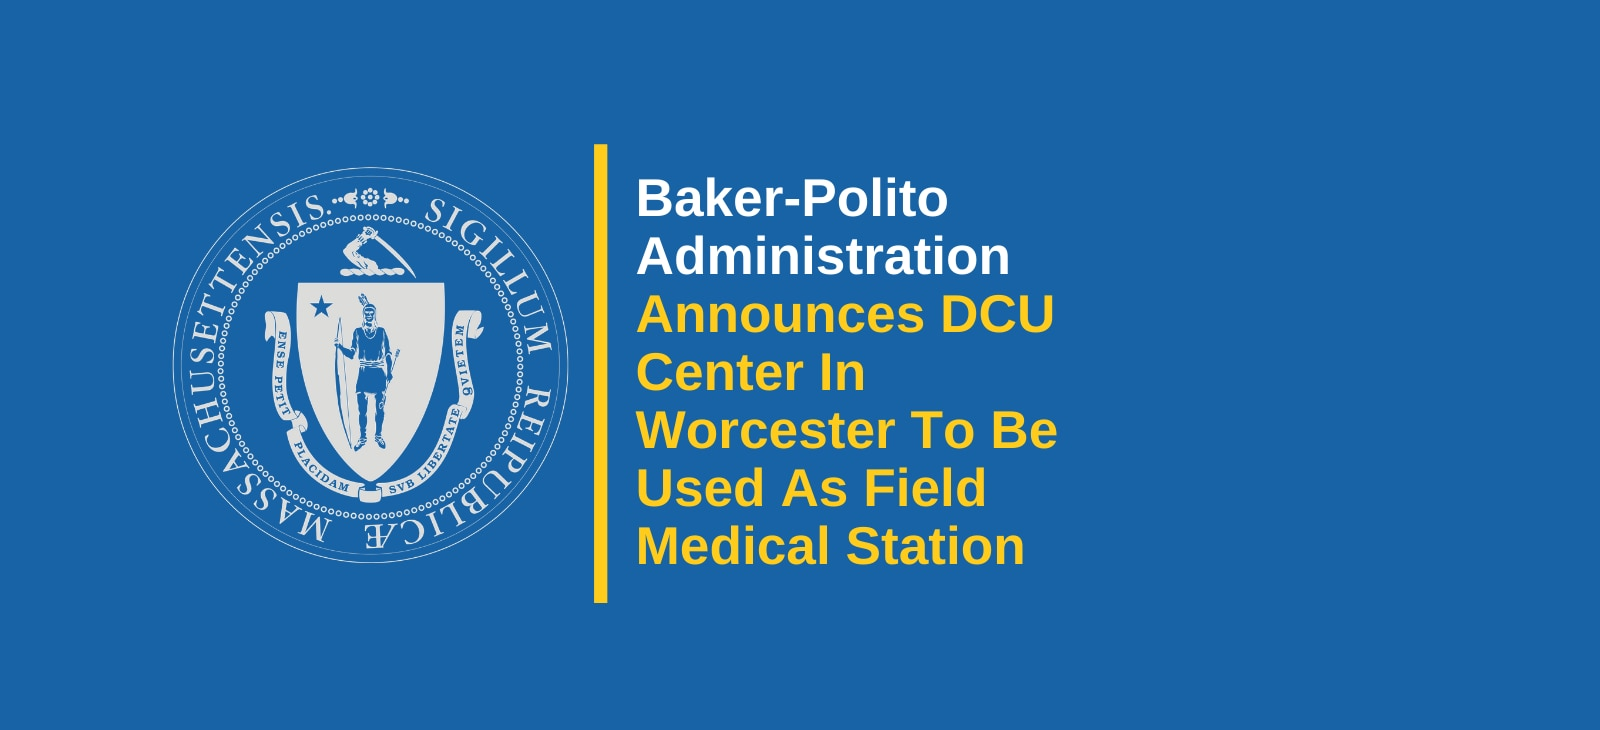 DCU Center in Worcester to be Used as a Field Medical Station